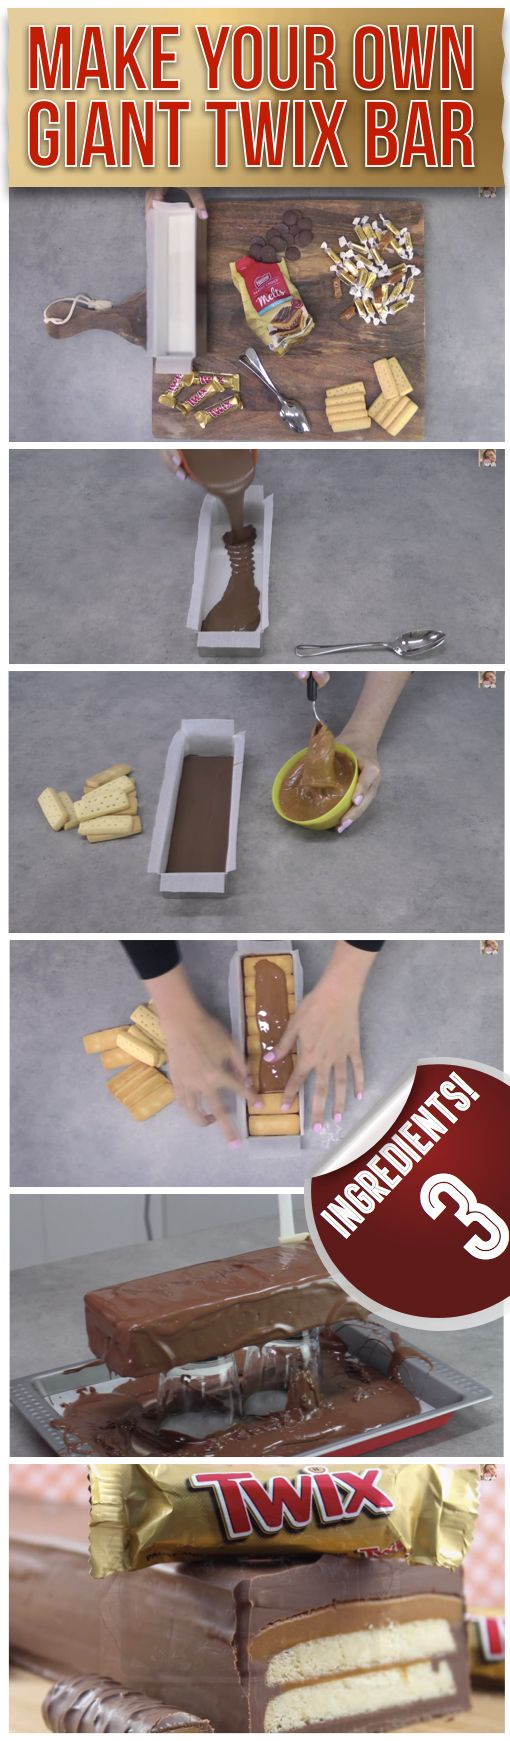 Make+Your+Own+Giant+Twix+Bar+With+Three+Simple+Ingredients!